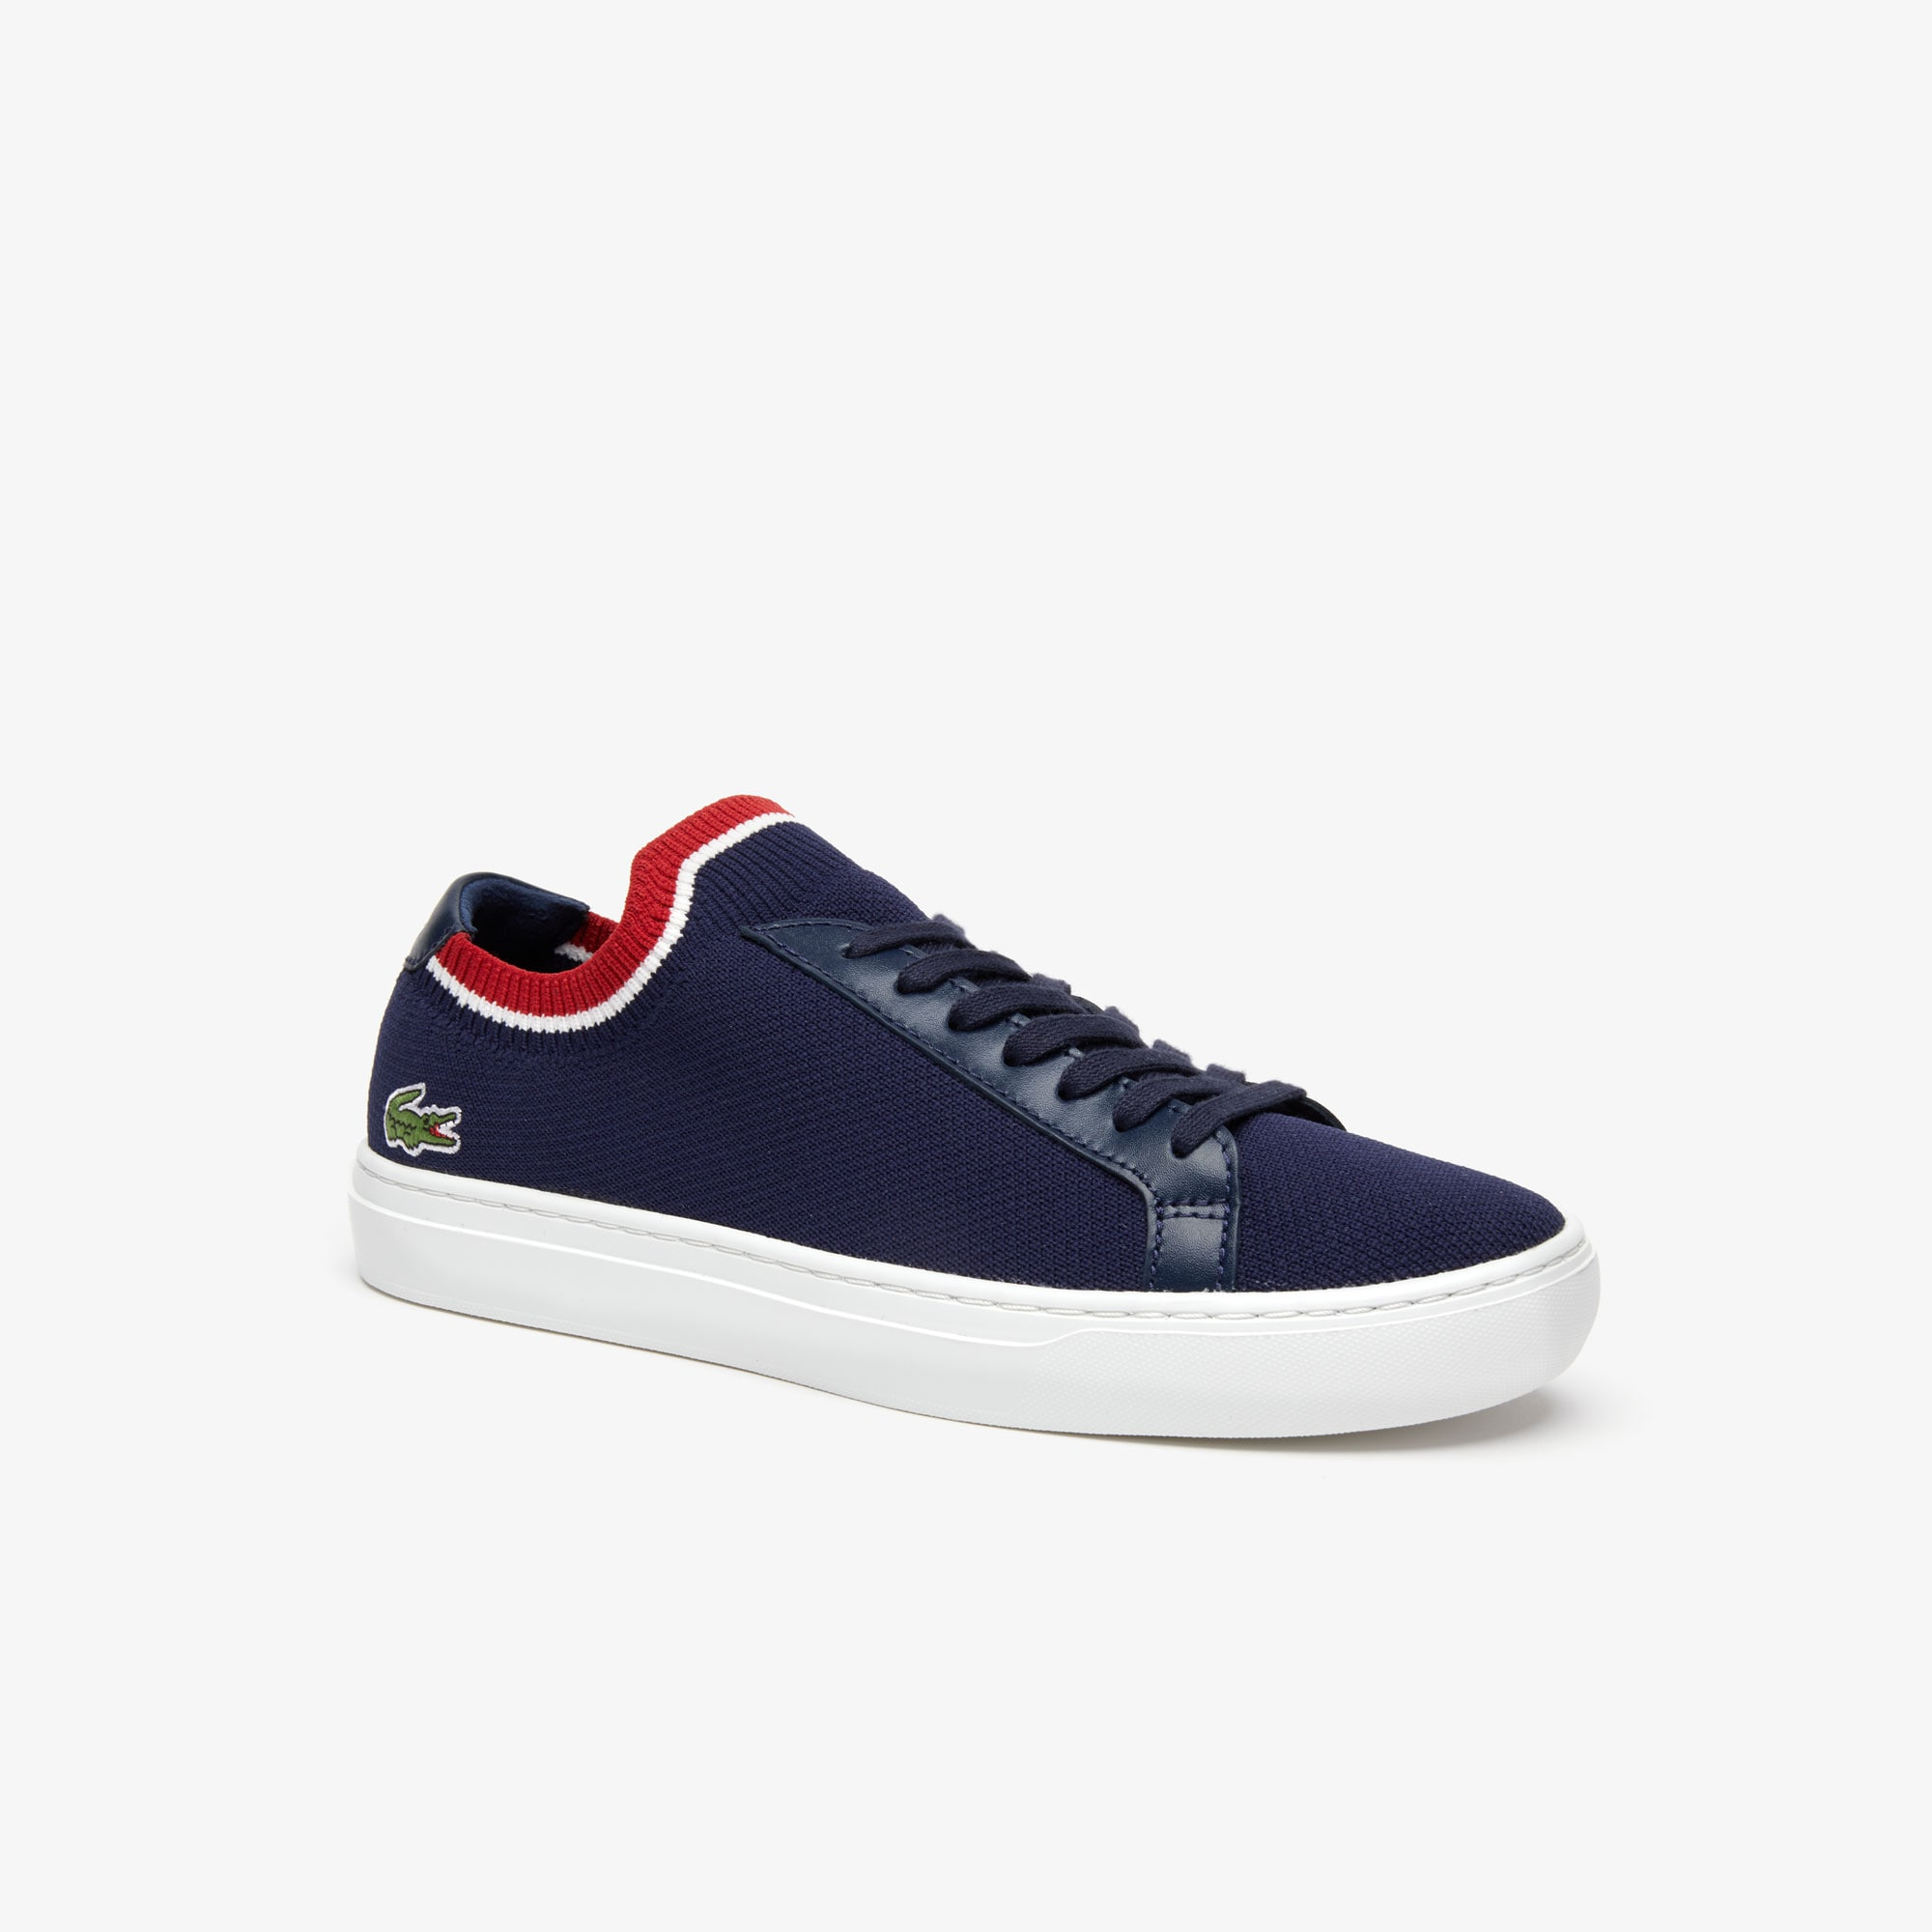 05302108997d Men s La Piquée Textile Trainers. £95.00. + 3 colors